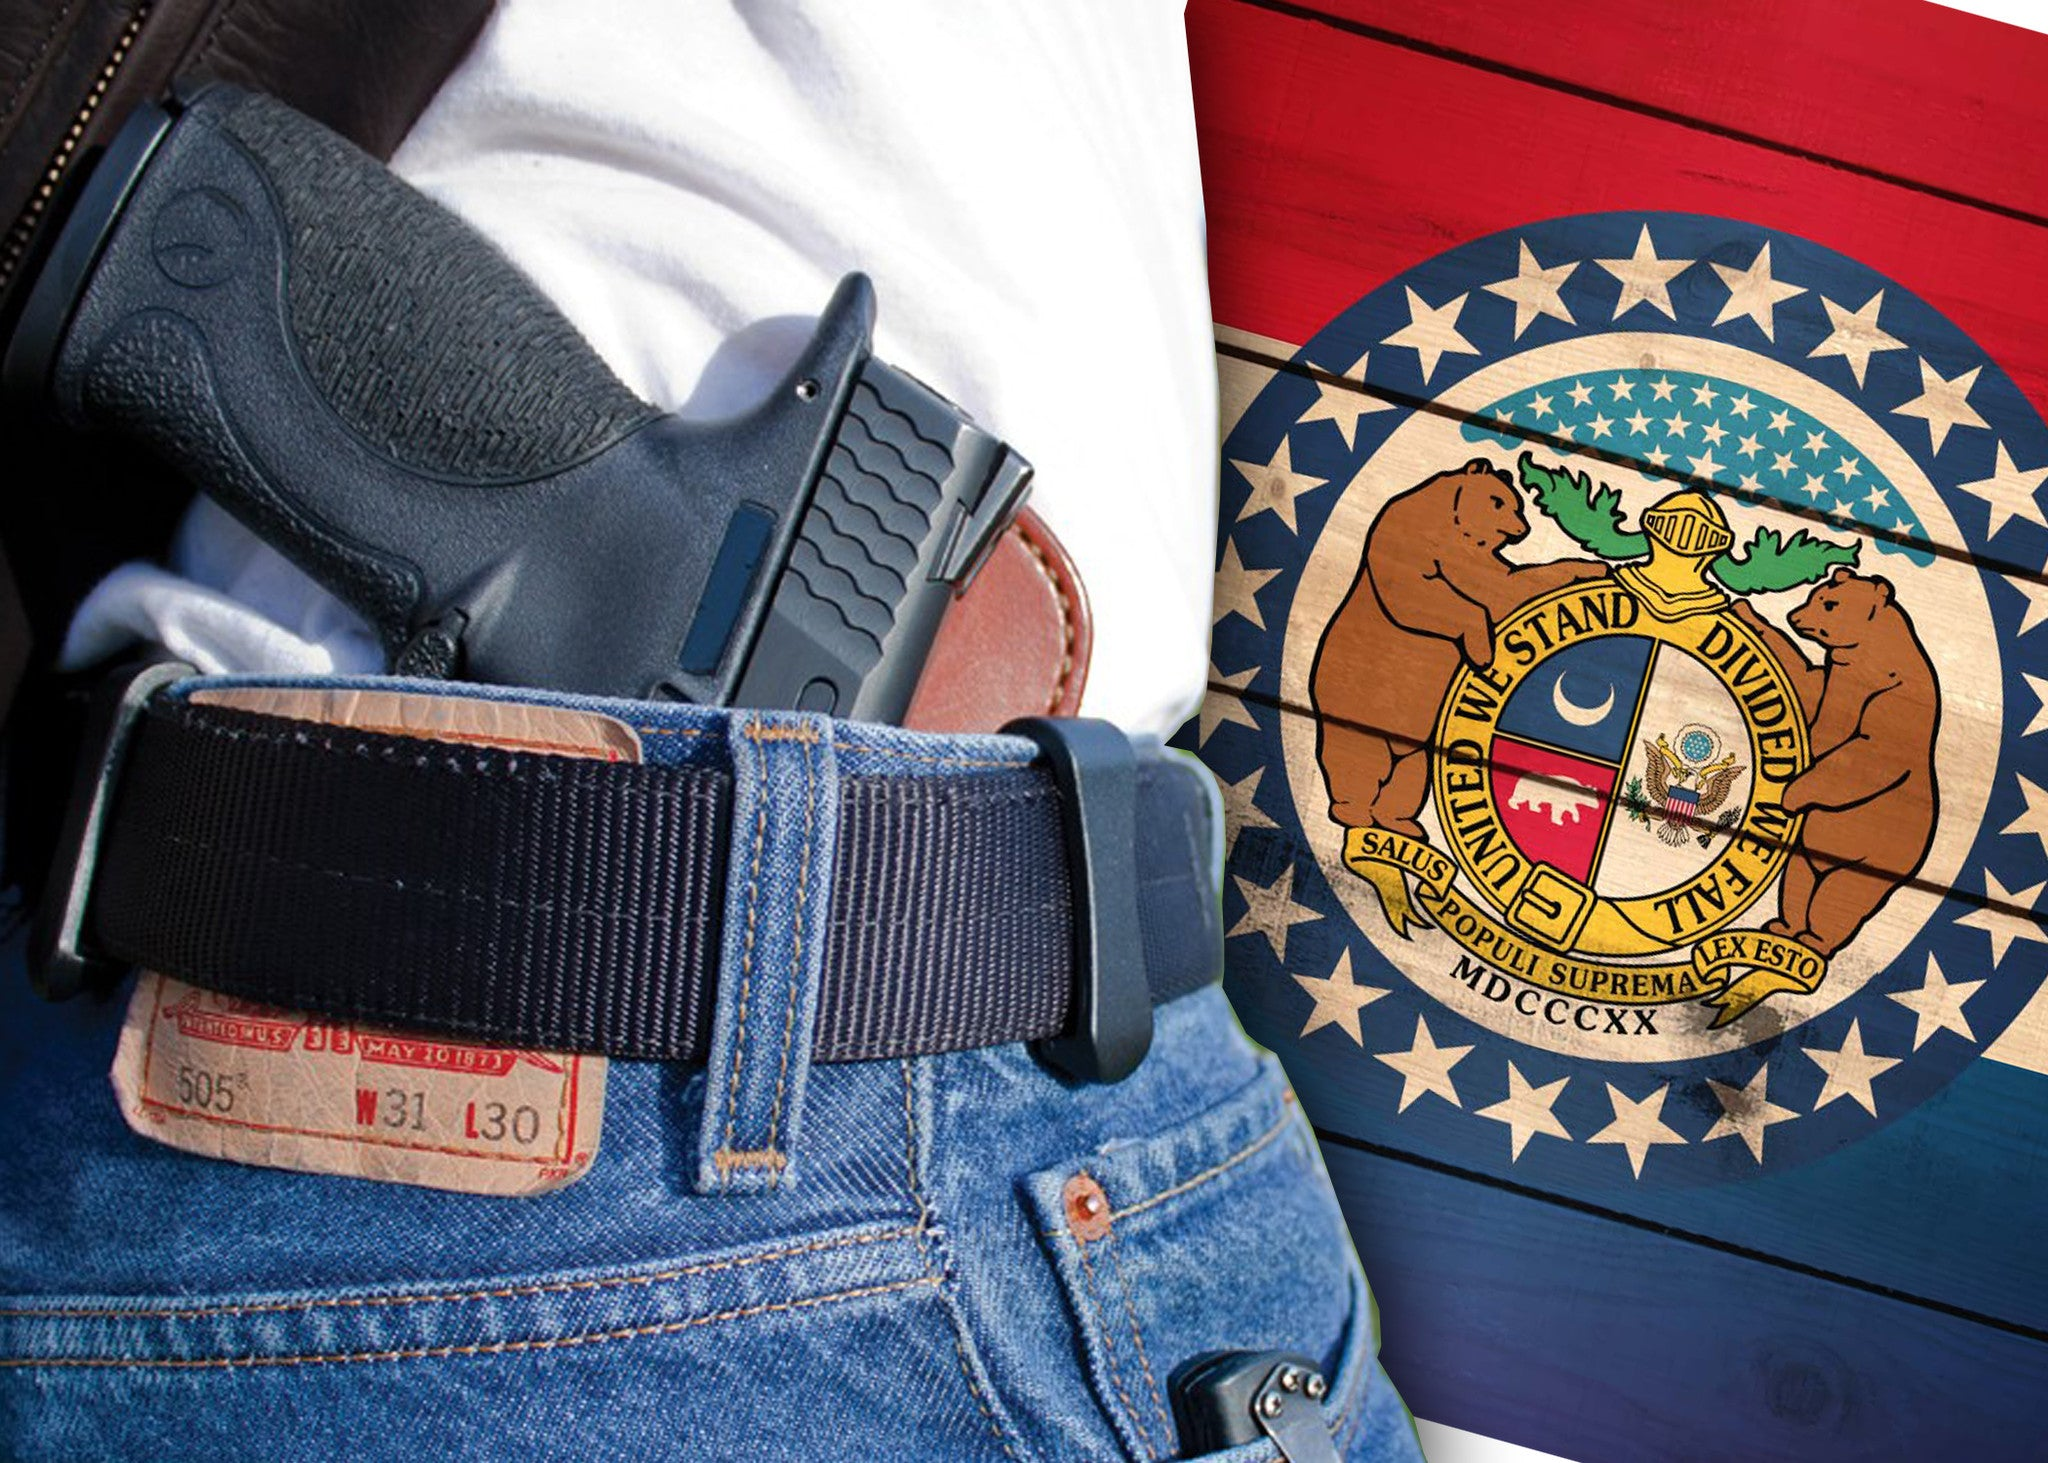 MISSOURI OVERRIDES VETO; ENACTS CONSTITUTIONAL CARRY.